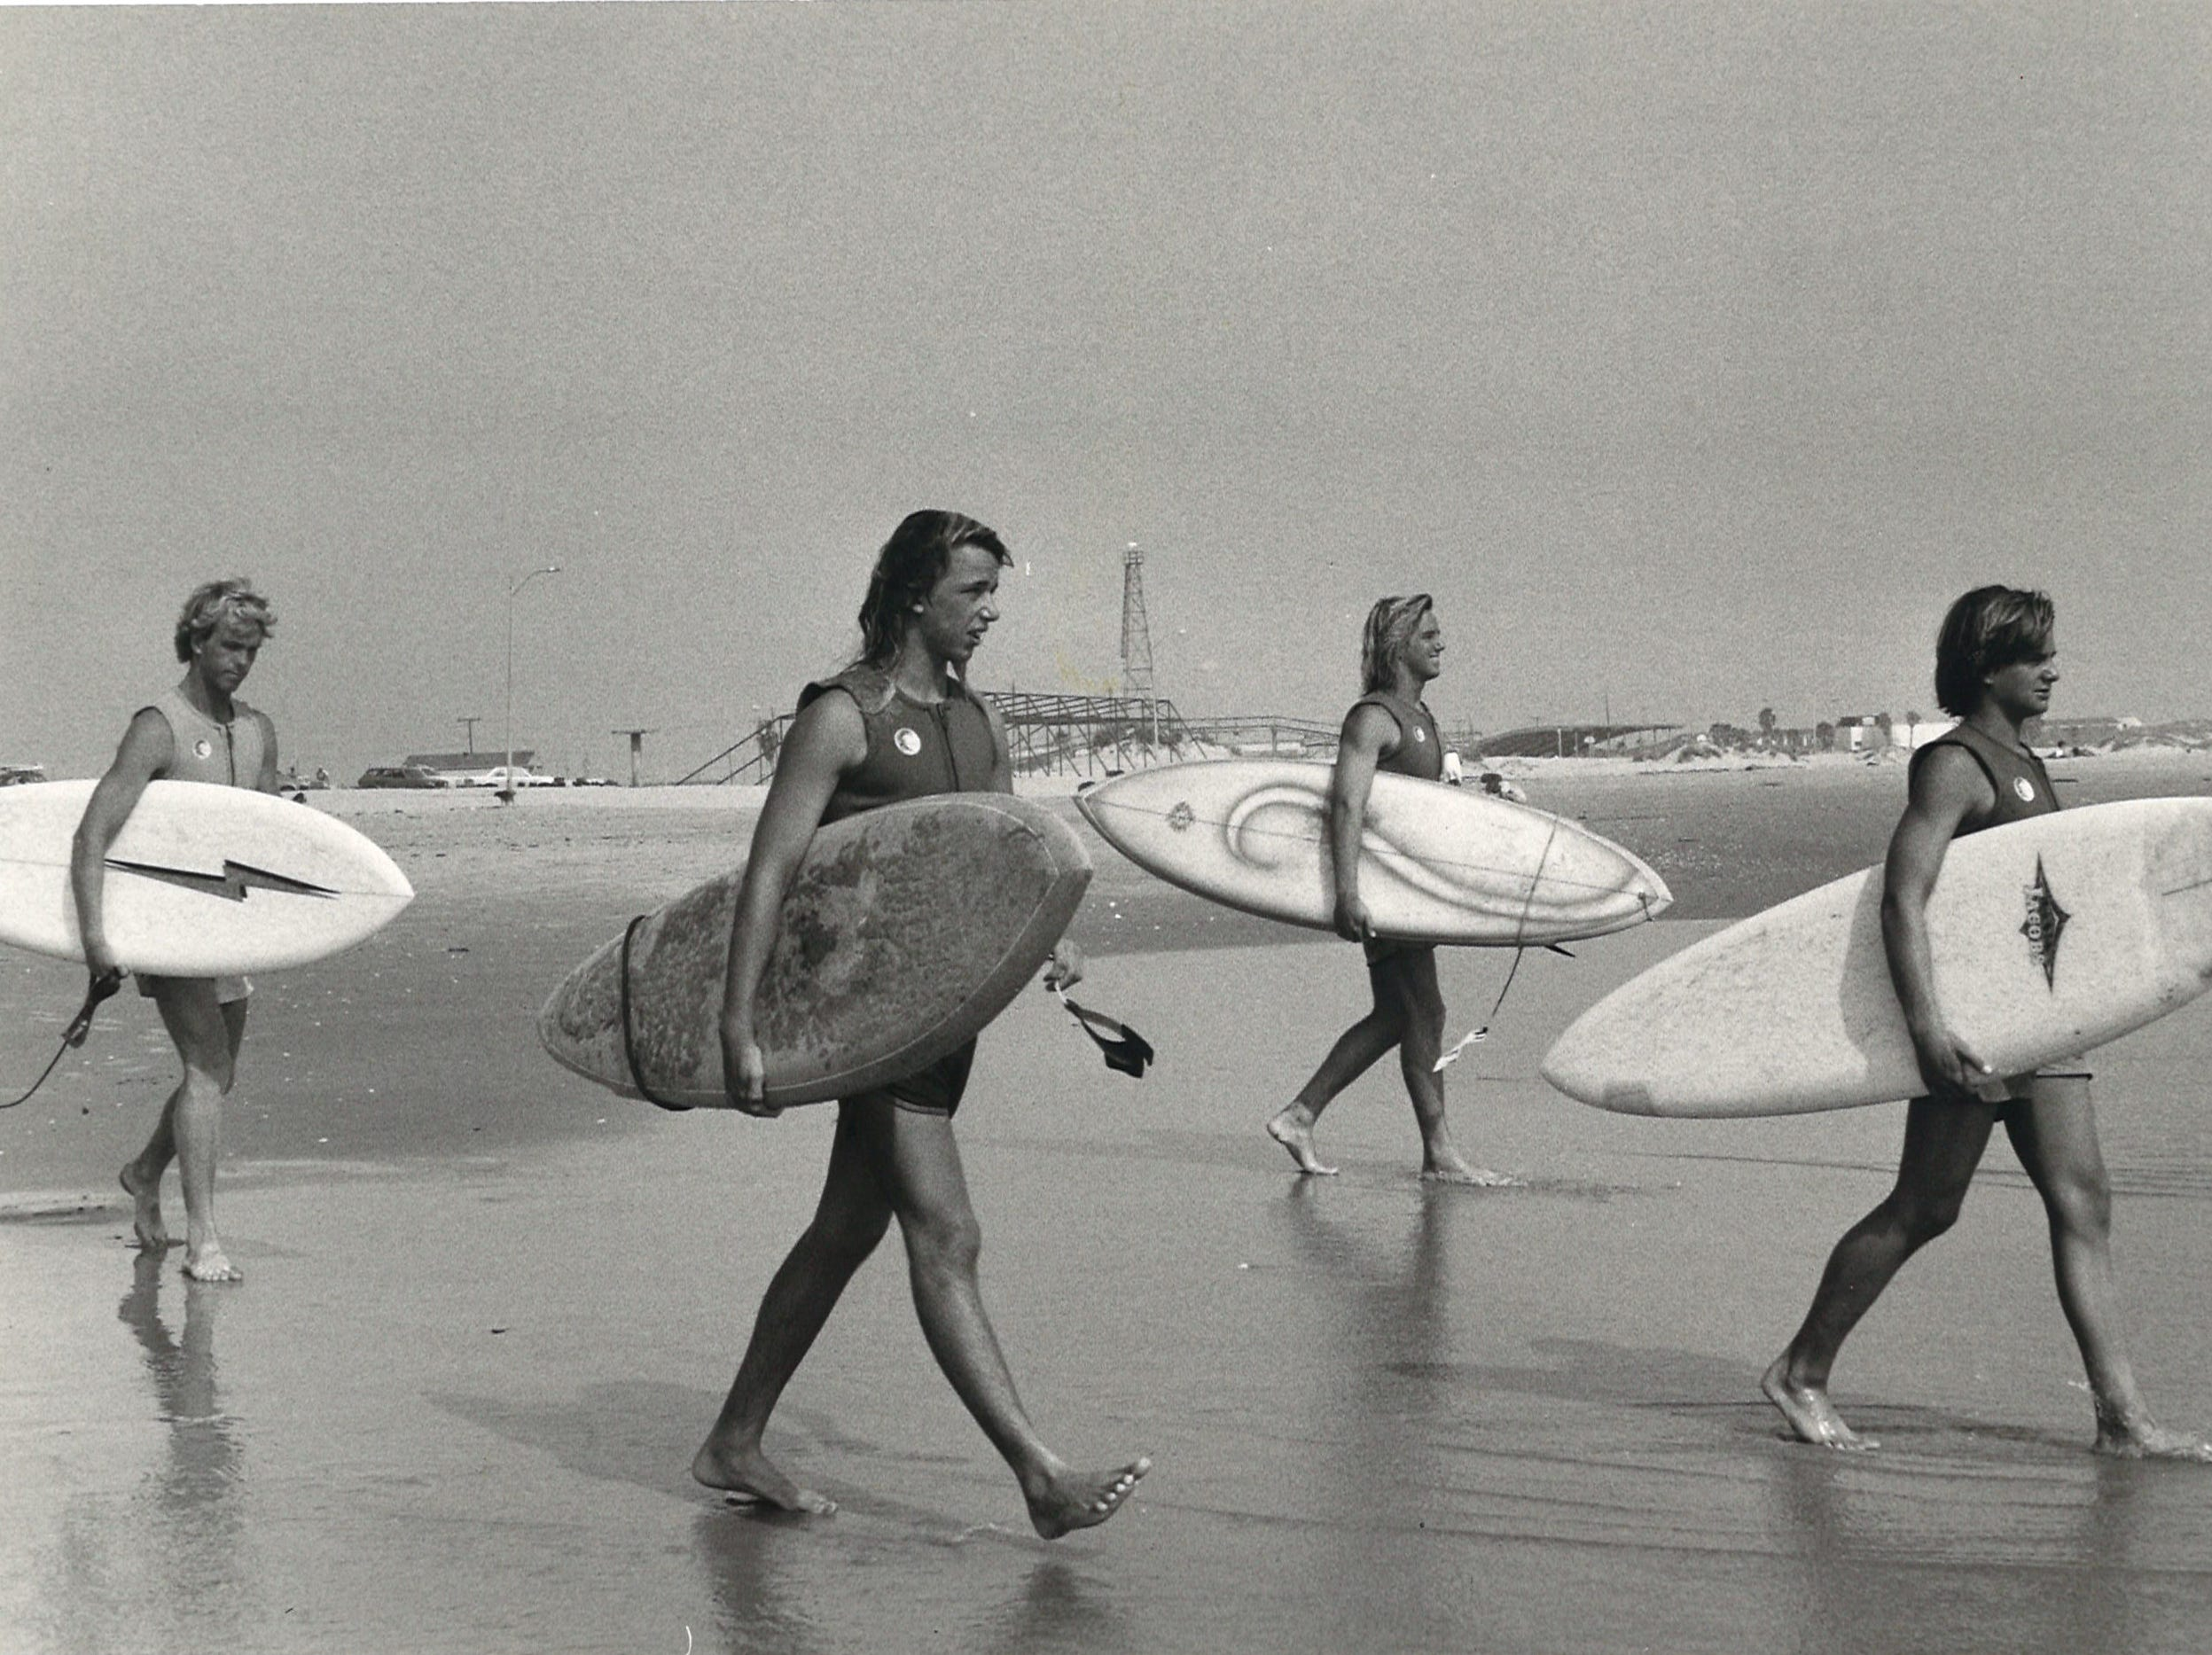 Heading into the surf during the 1979 U.S. Surfing Championship, which as held in Corpus Christi that year.